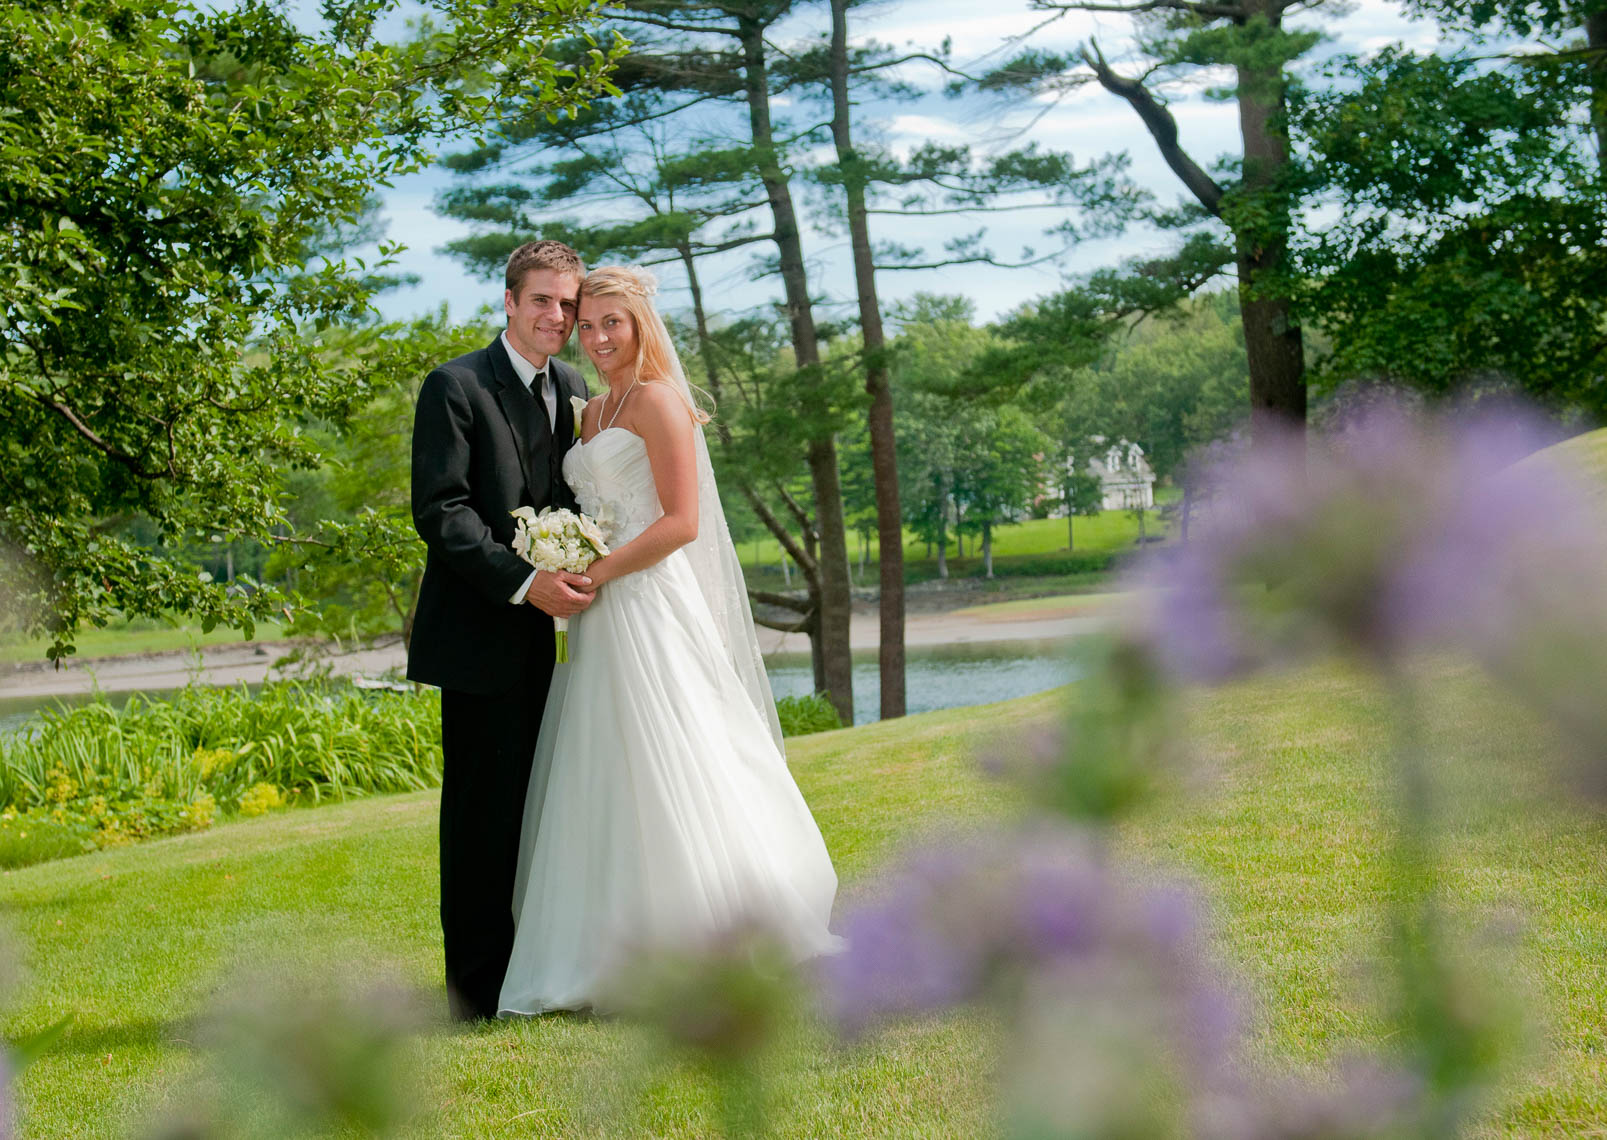 Matt_Bethany_Wedding_002.JPG